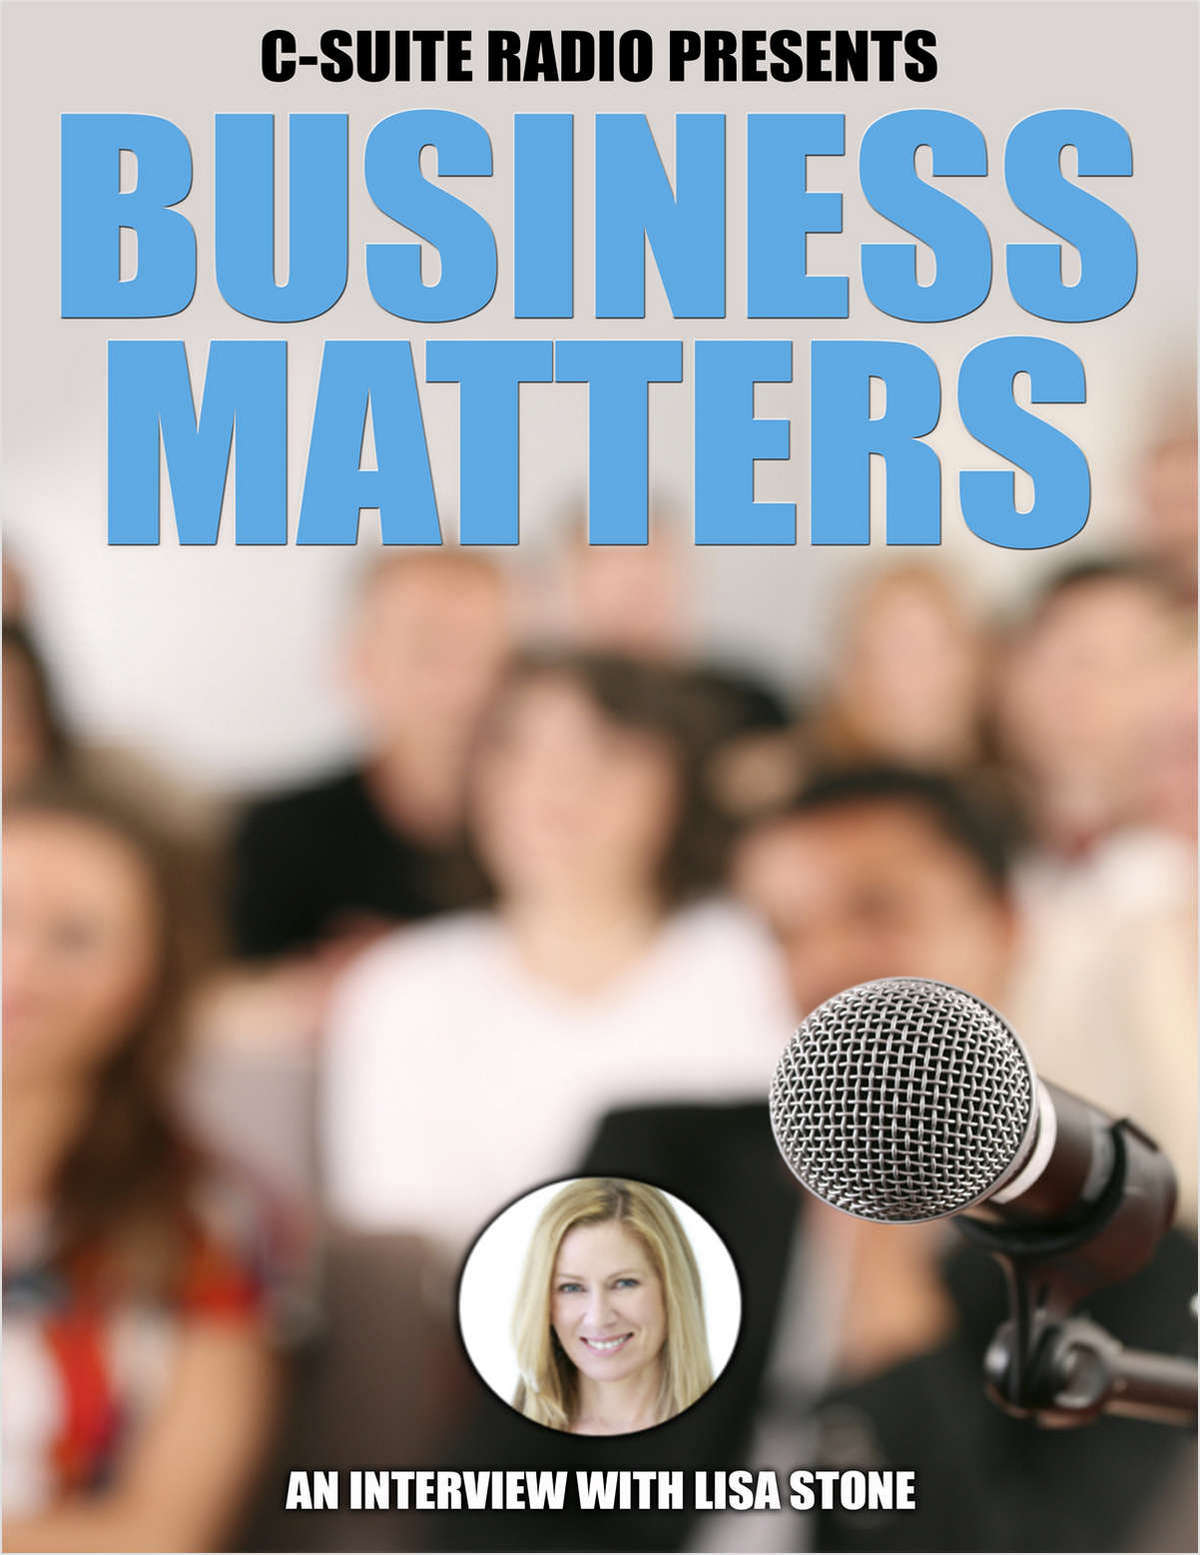 Business Matters Podcast - Discussing Work-Life Balance with Lisa Stone, Co-Founder of BlogHer